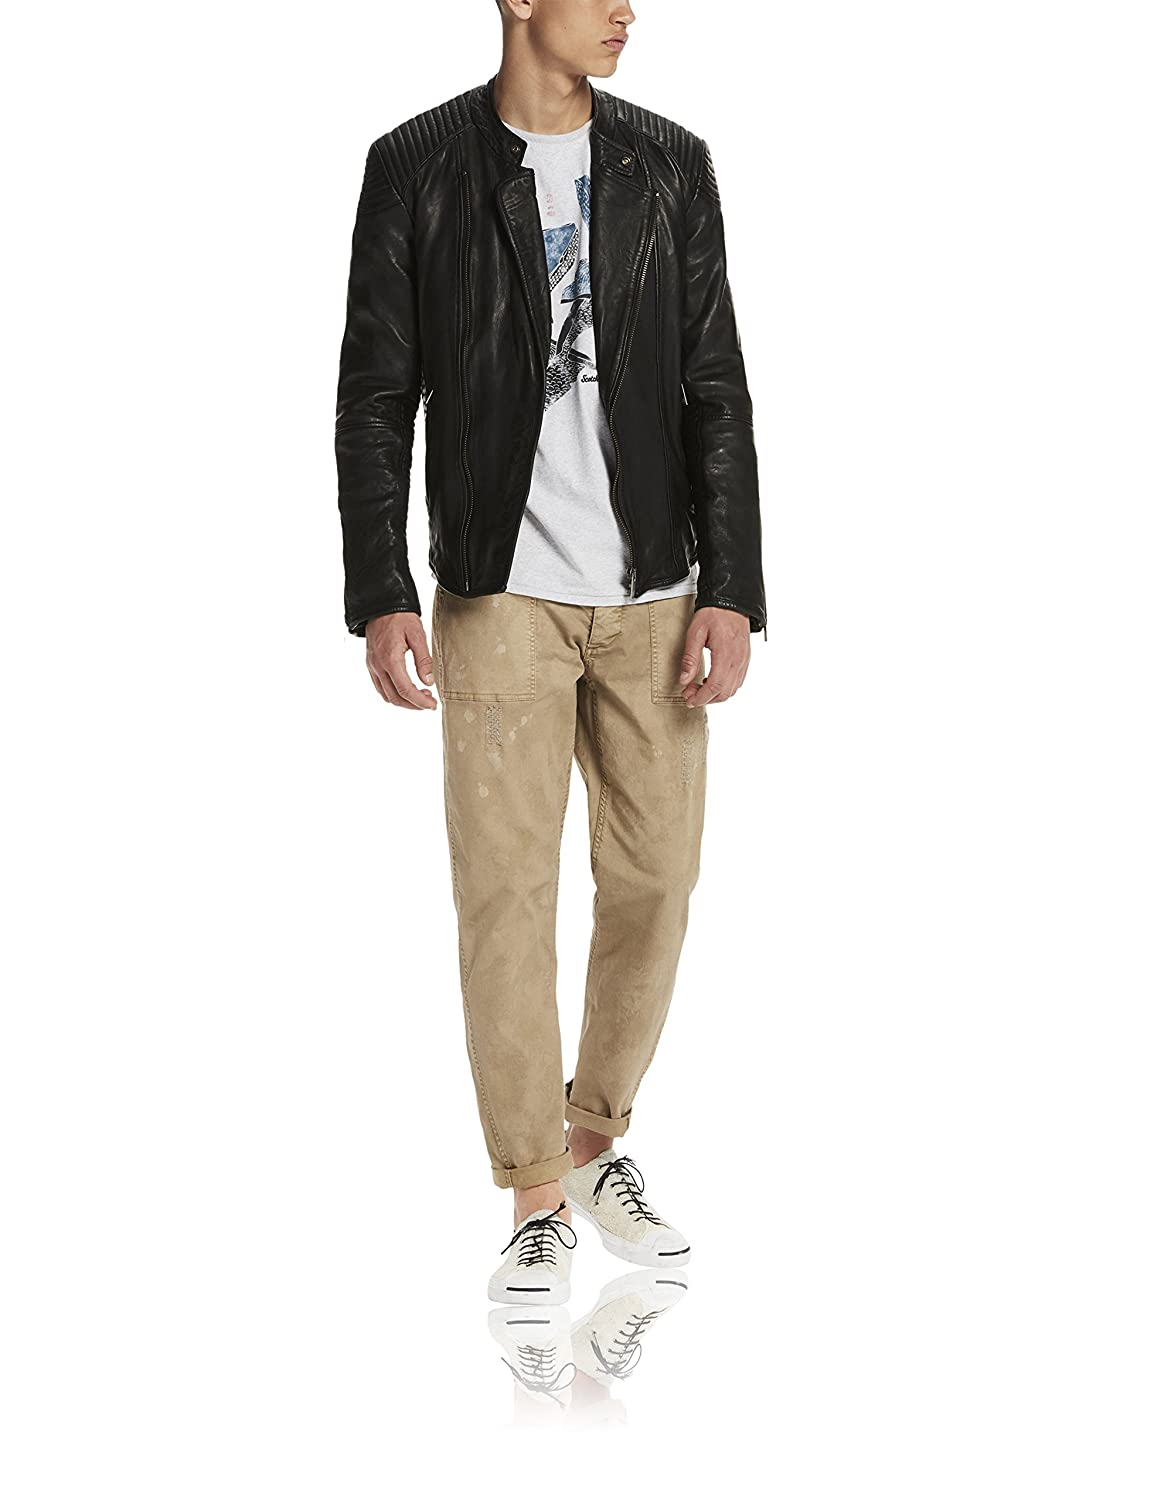 Scotch & Soda Herren Jacke Fitted Leather Biker Jacket with Asymmetric Closure